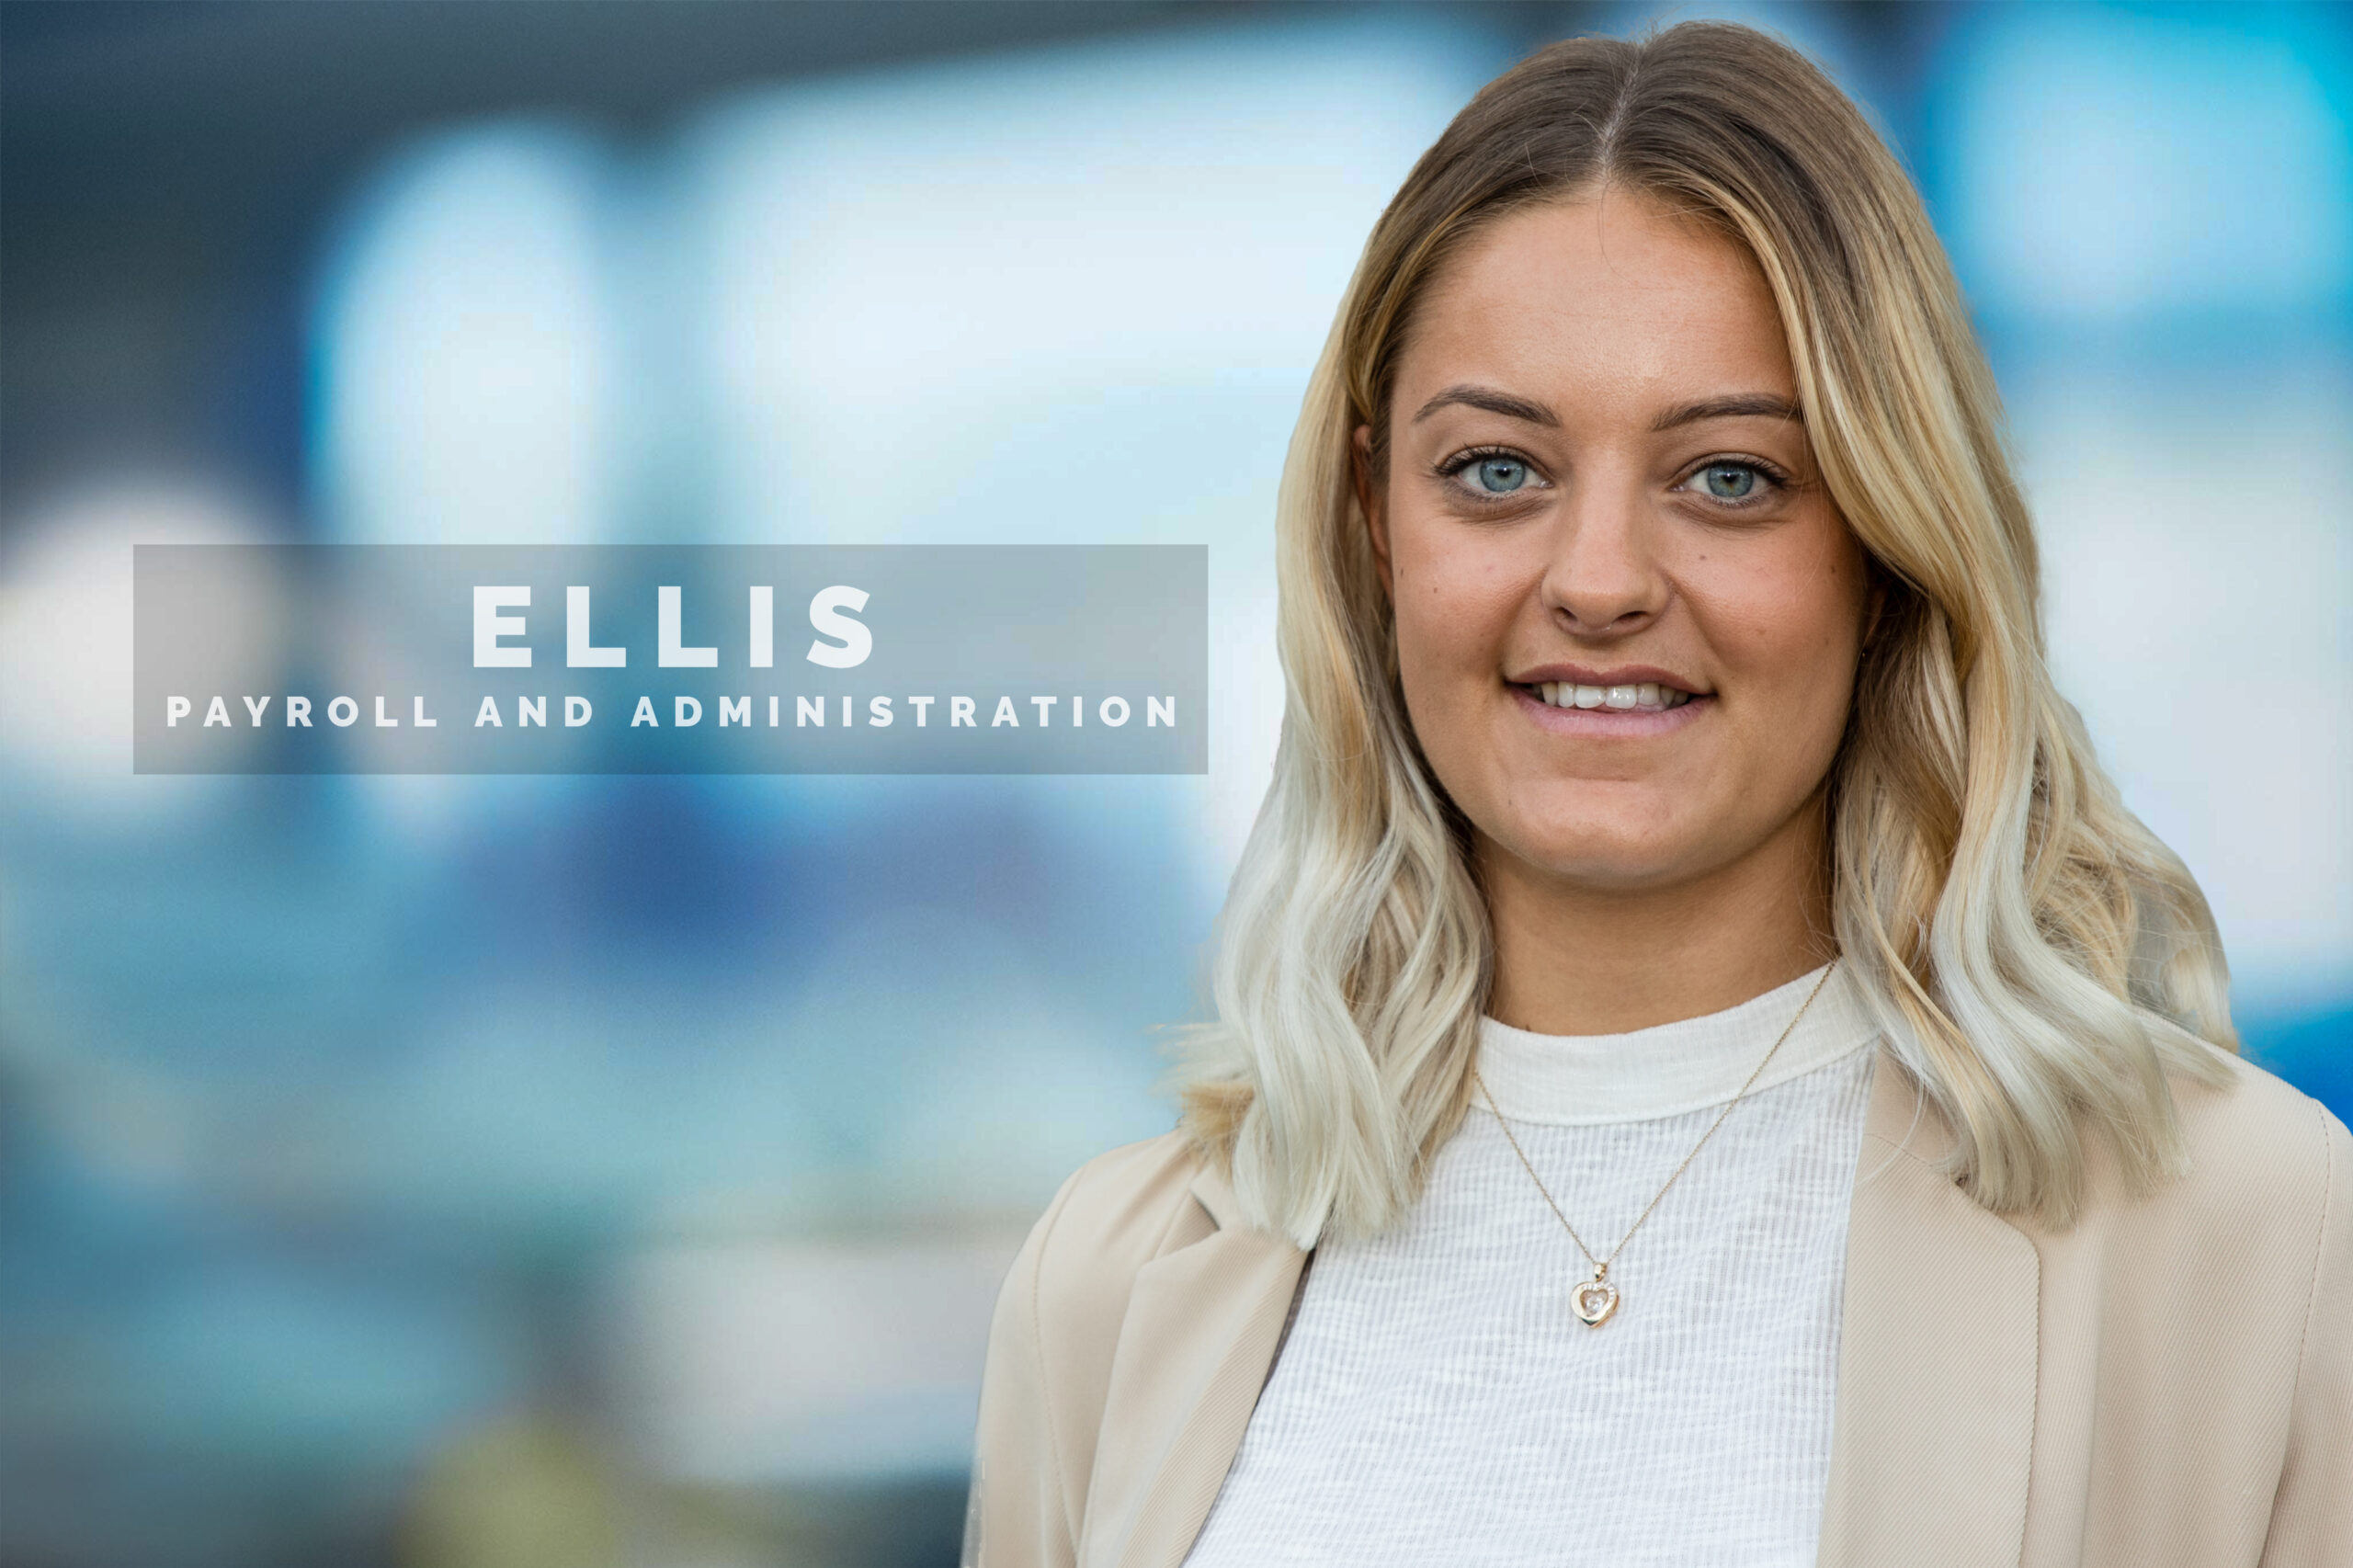 Ellis - Payroll and Administration